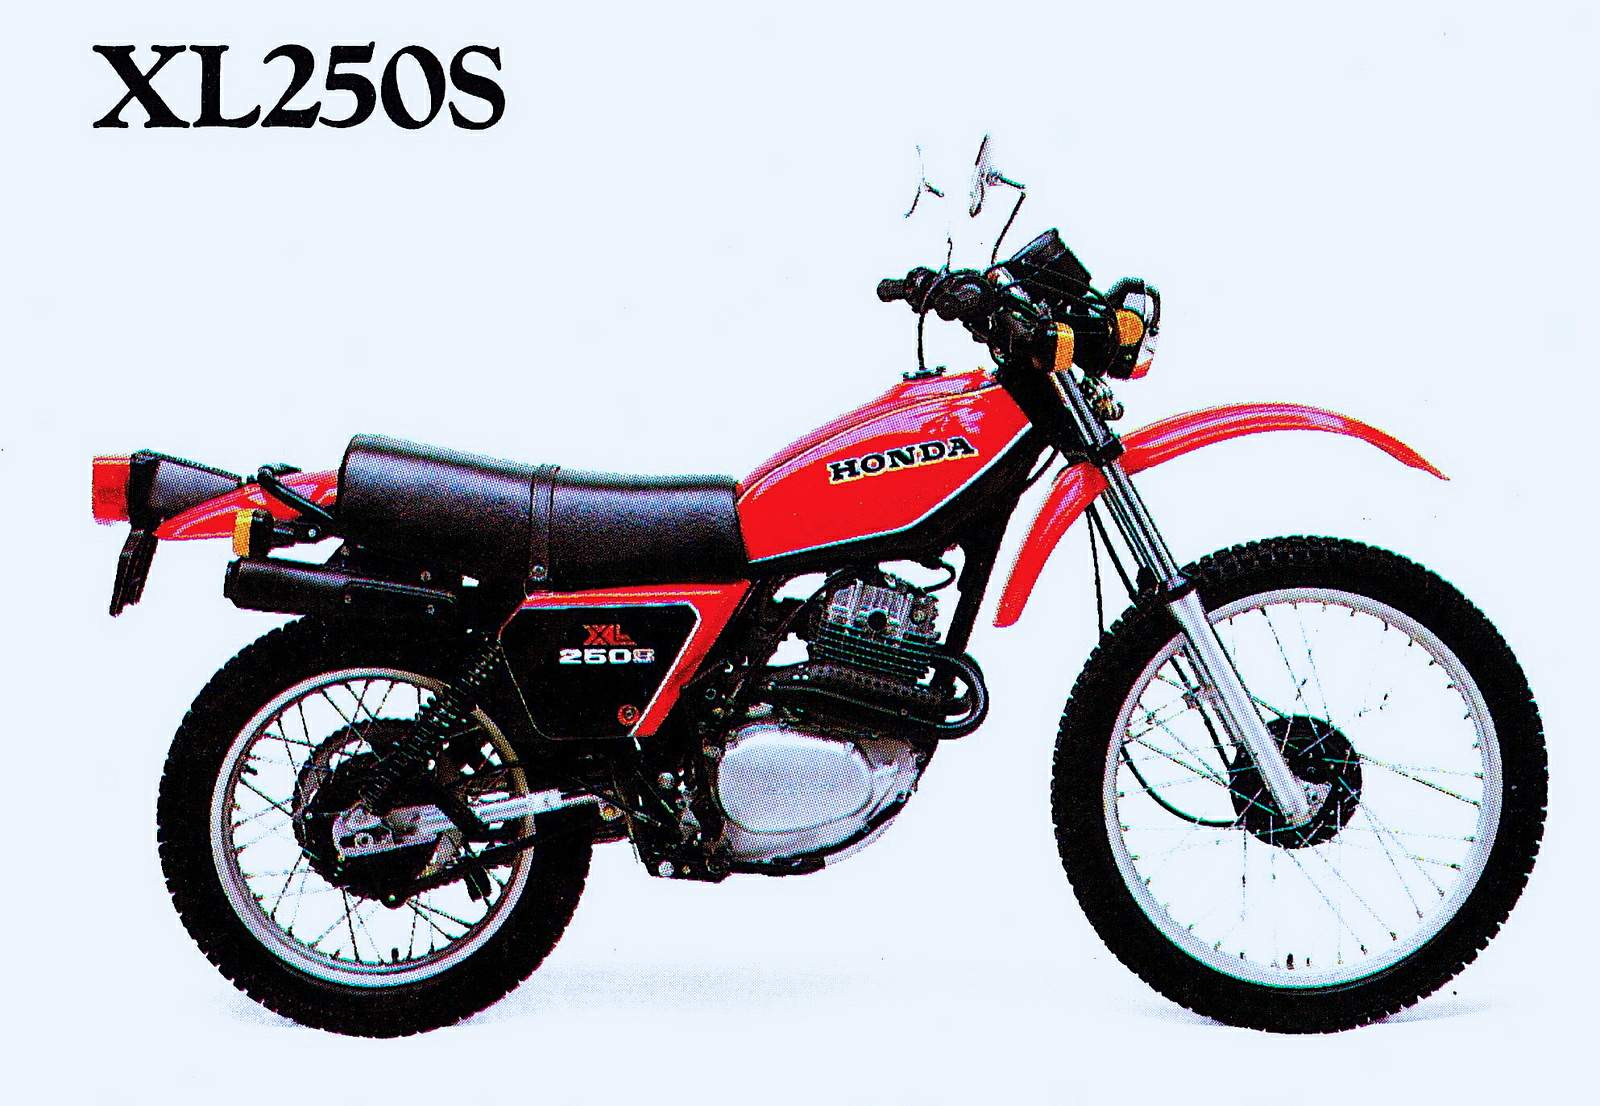 Wiring Diagram 1978 Xl250s Schematics Diagrams Honda Xl600r Rh Motorcyclespecs Co Za 1985 1972 Xl250